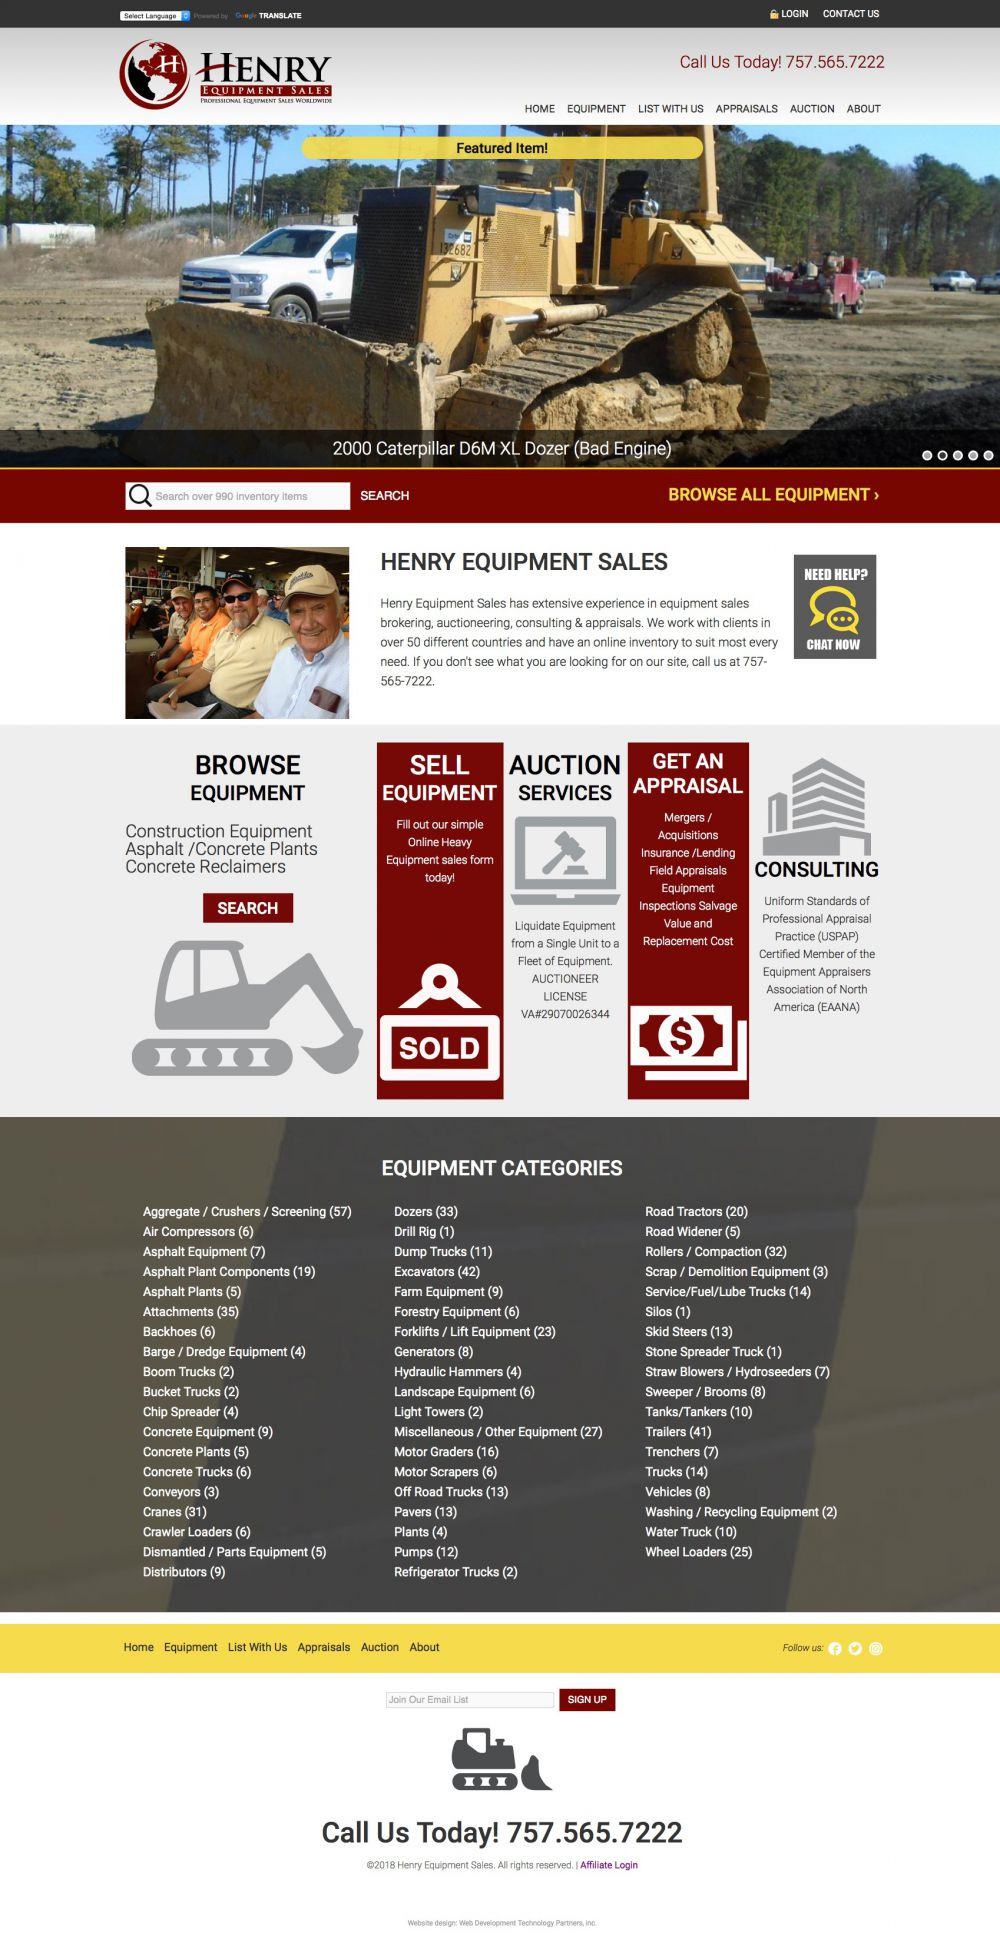 Henry Equipment Sales